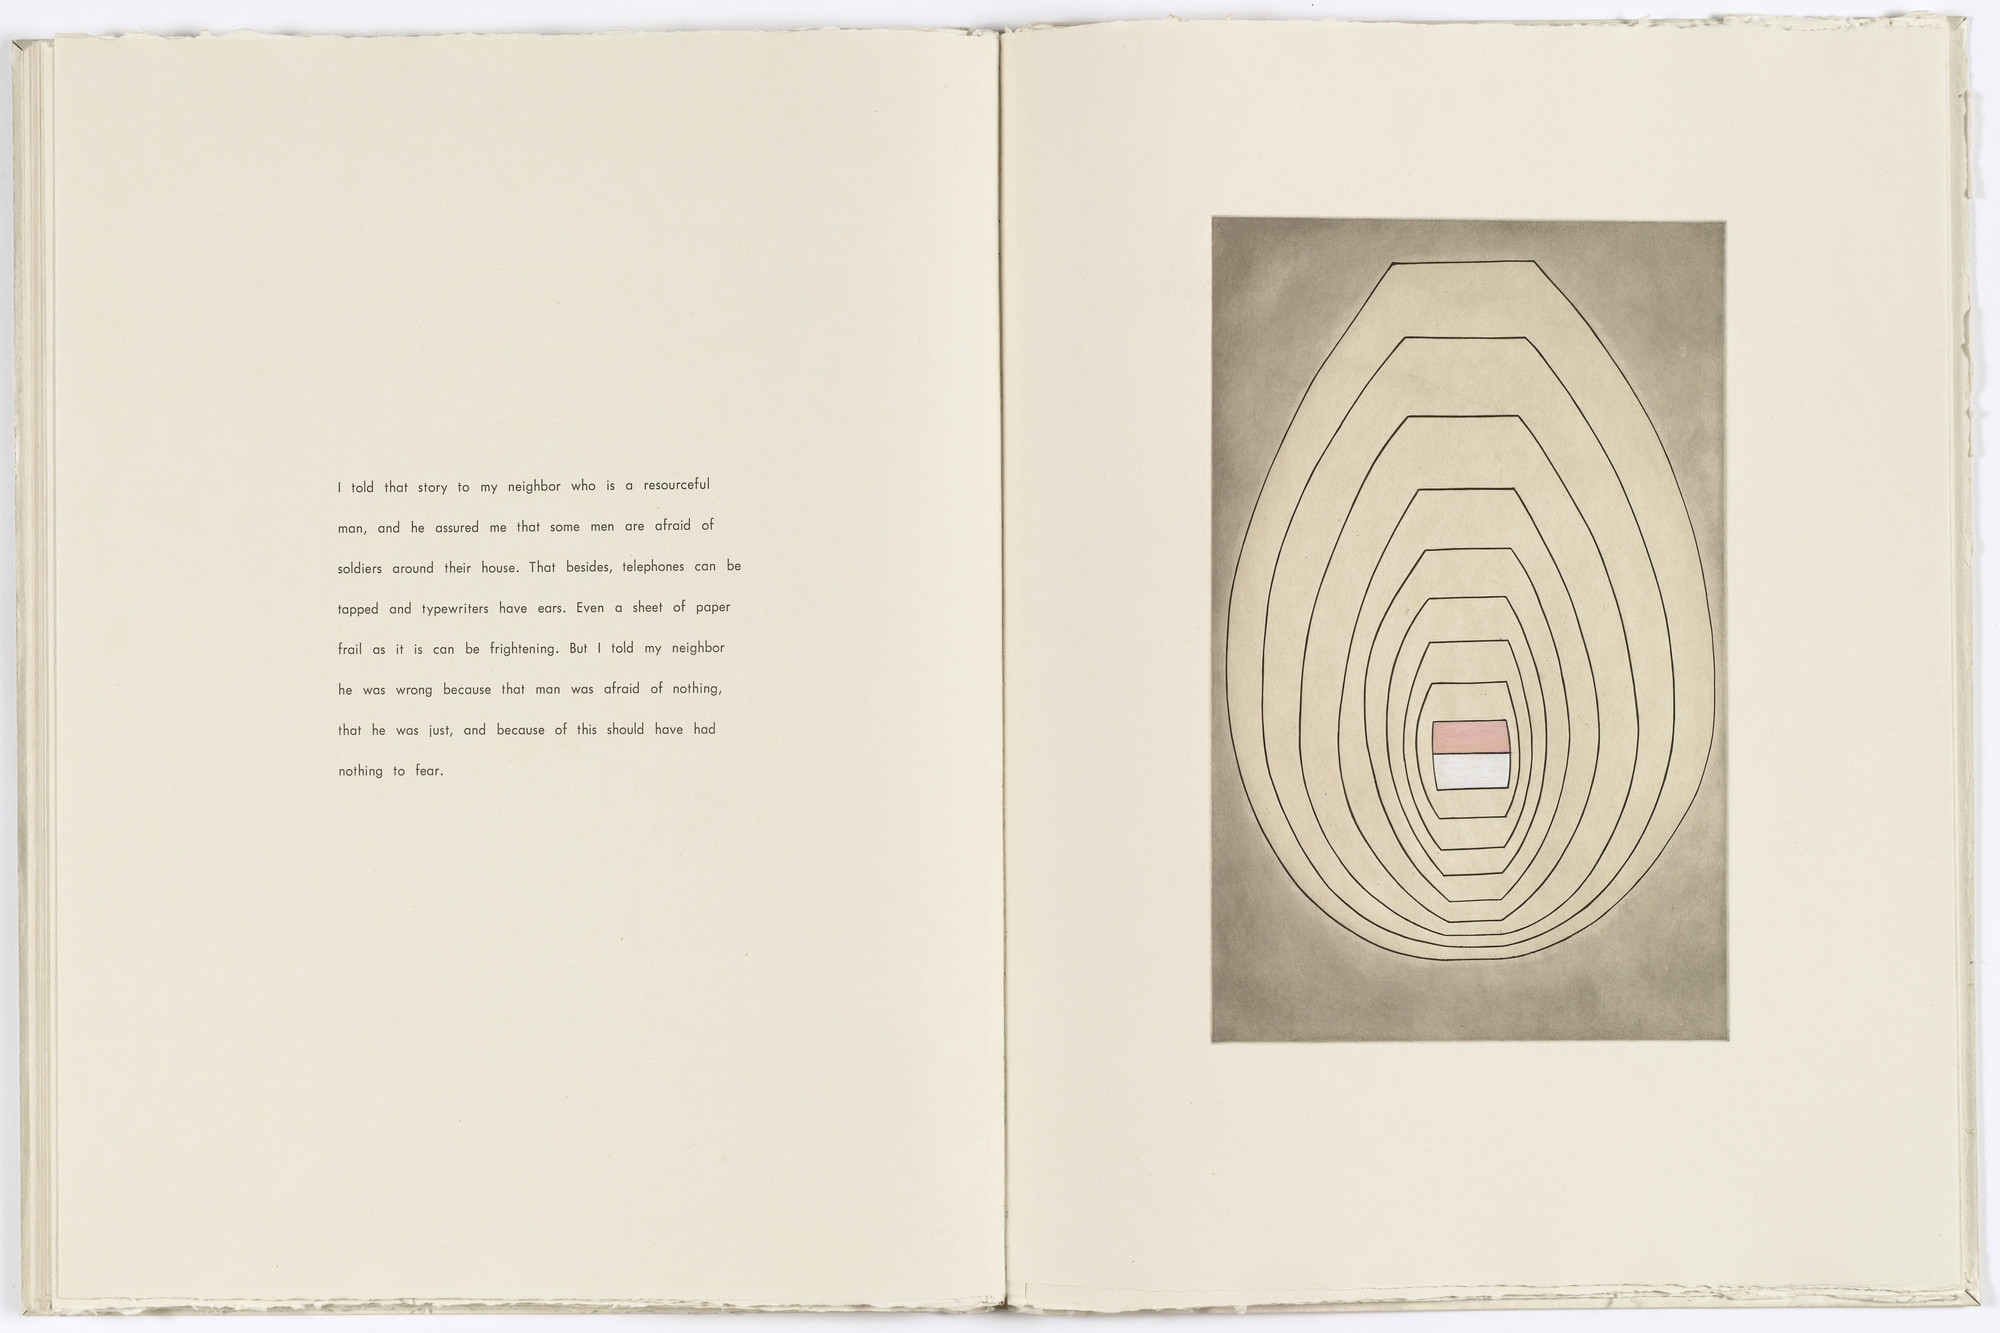 Louise Bourgeois. Untitled, plate 7 of 8, from the illustrated book, the puritan. 1990